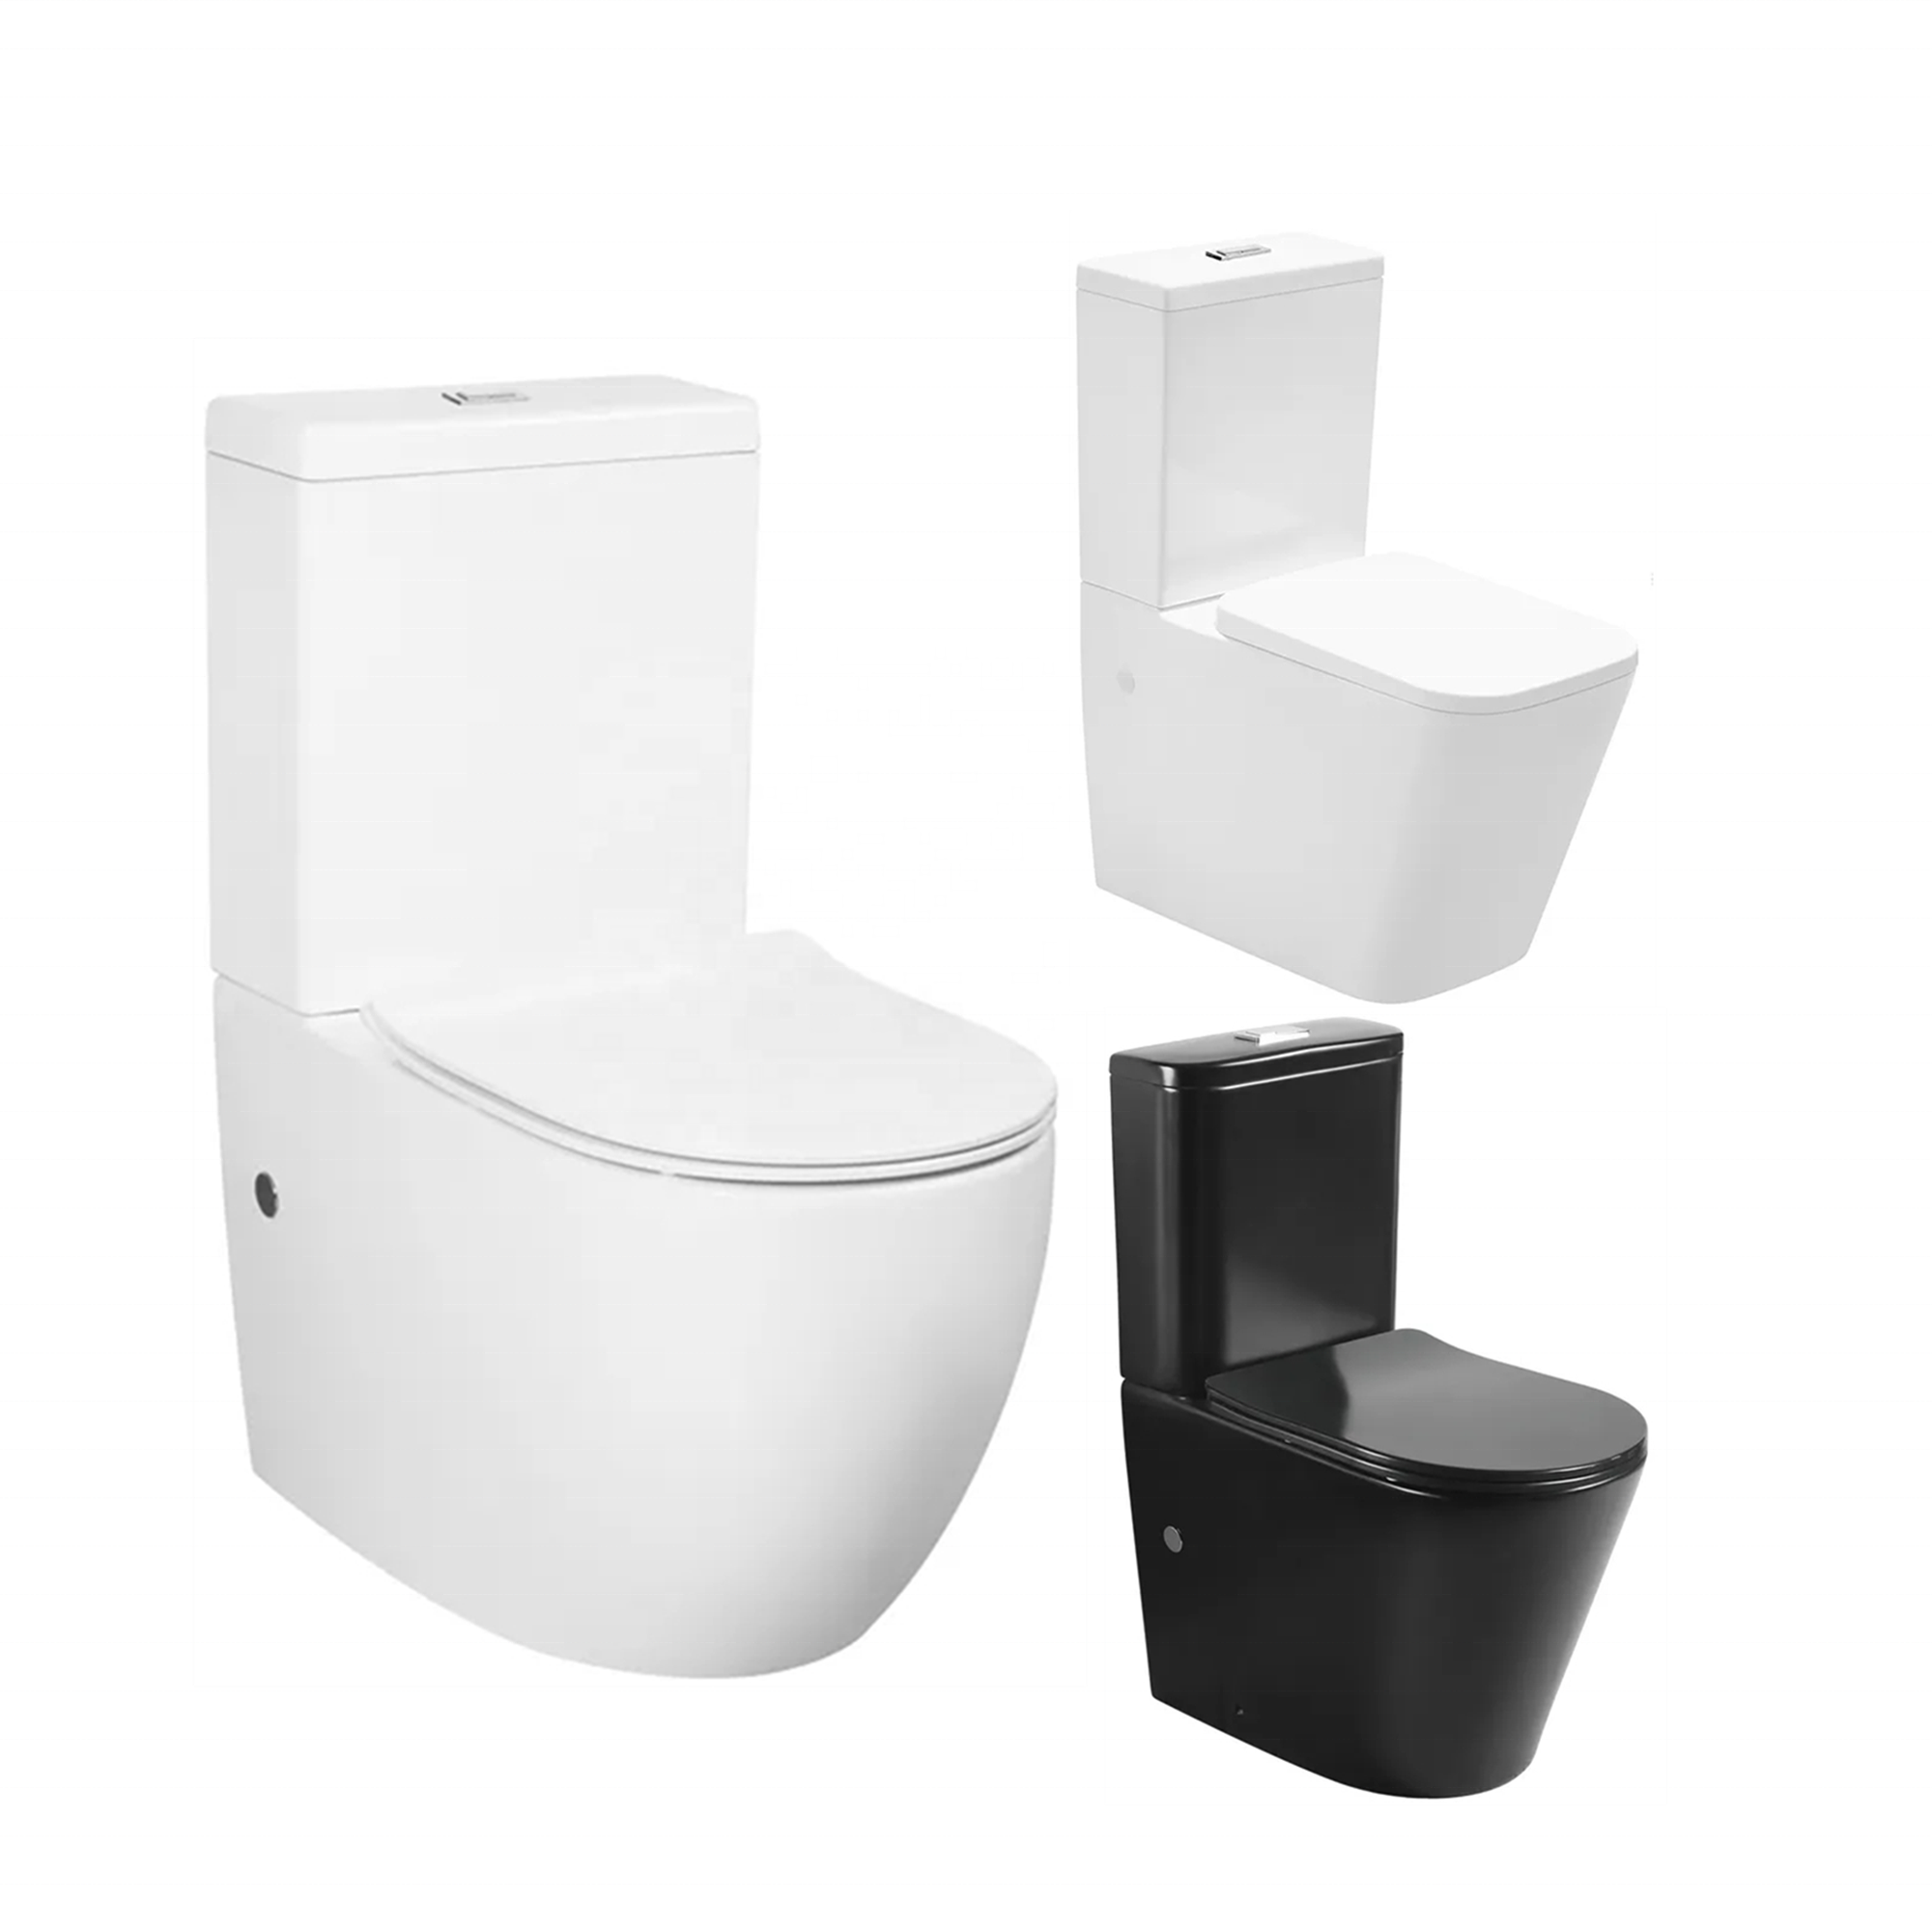 Chinese modern sanitary ware bathroom ceramic black wc piss two piece toilet set